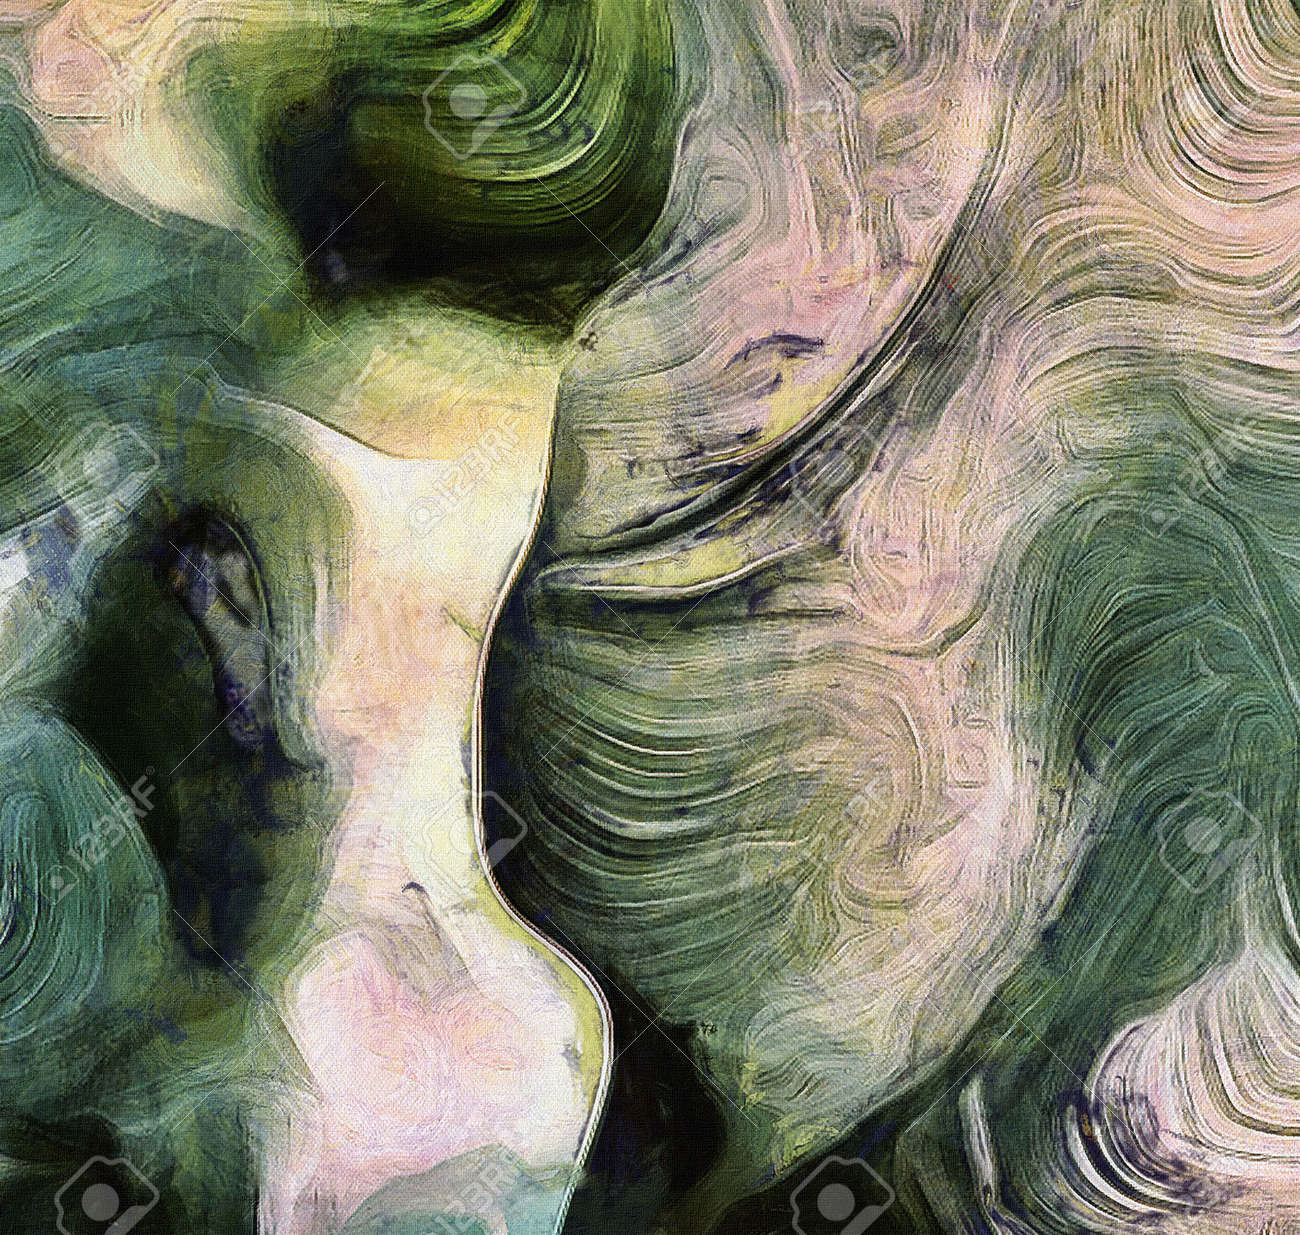 fluid lines of color movement shades of green brush strokes